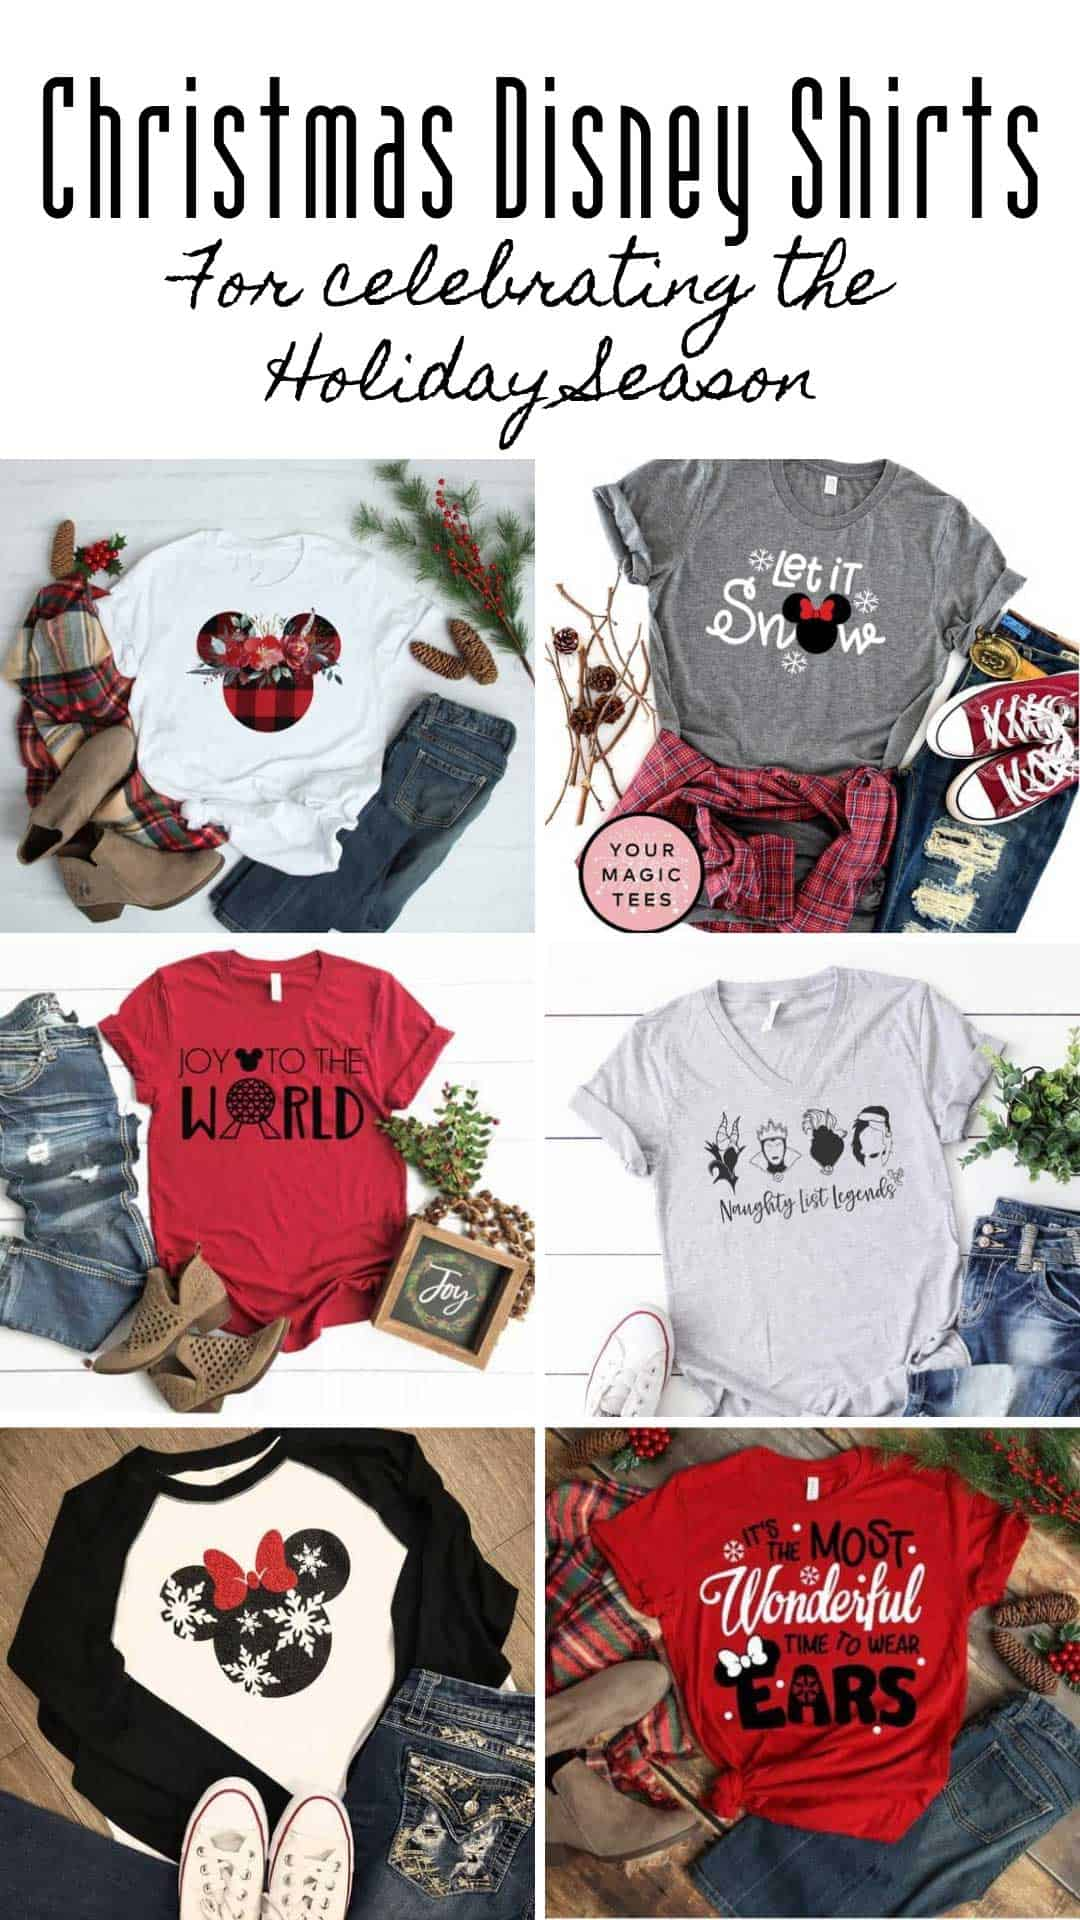 'Tis the season to be merry with these fabulous Christmas Disney shirt ideas for your Holiday season vacation! Or just while you're out doing the Christmas shopping!